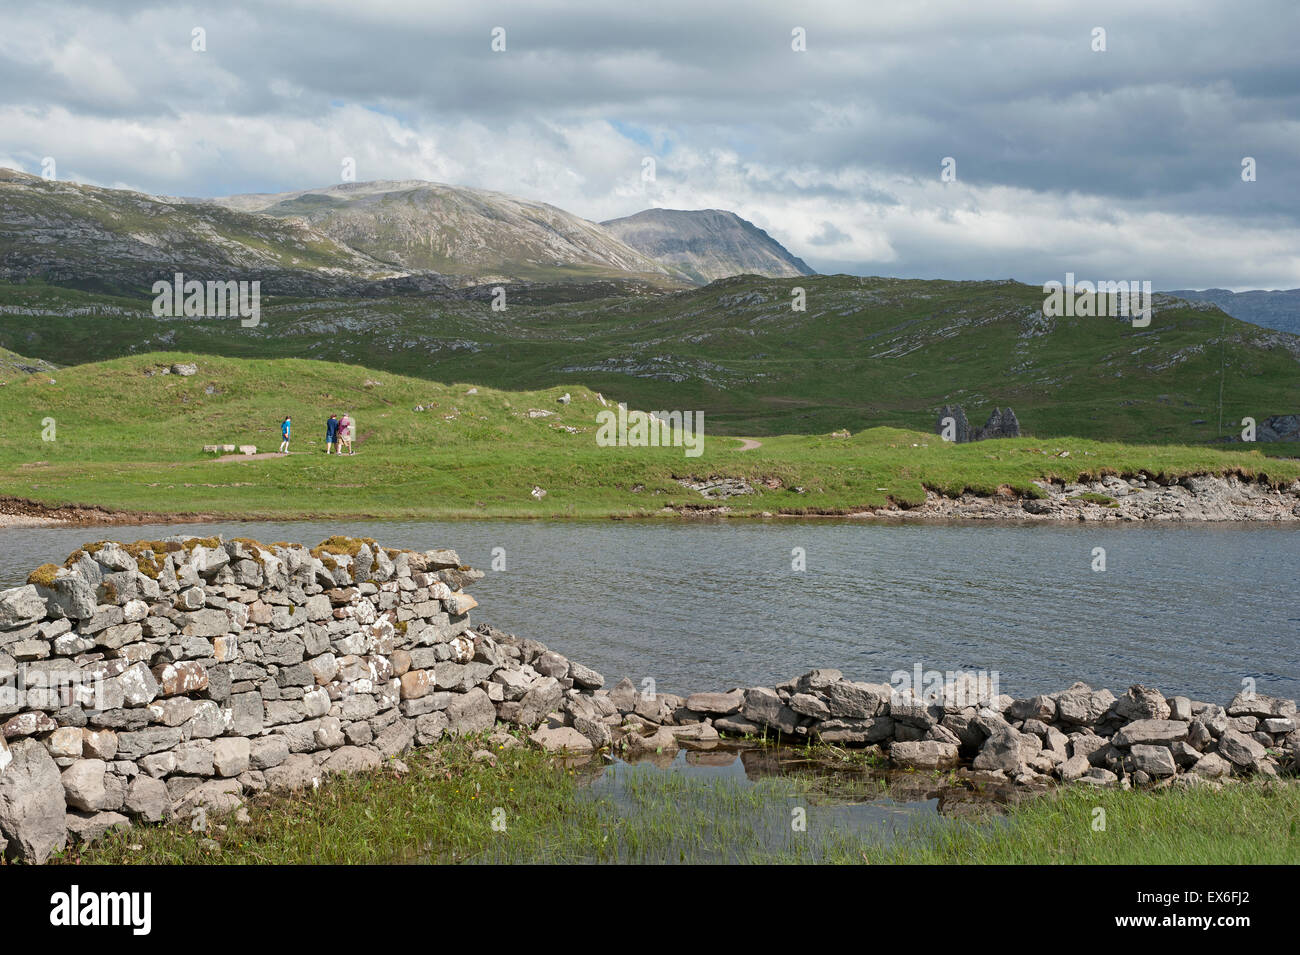 The North West Highlands Geopark was awarded UNESCO geopark status in 2004.  SCO 9918. - Stock Image